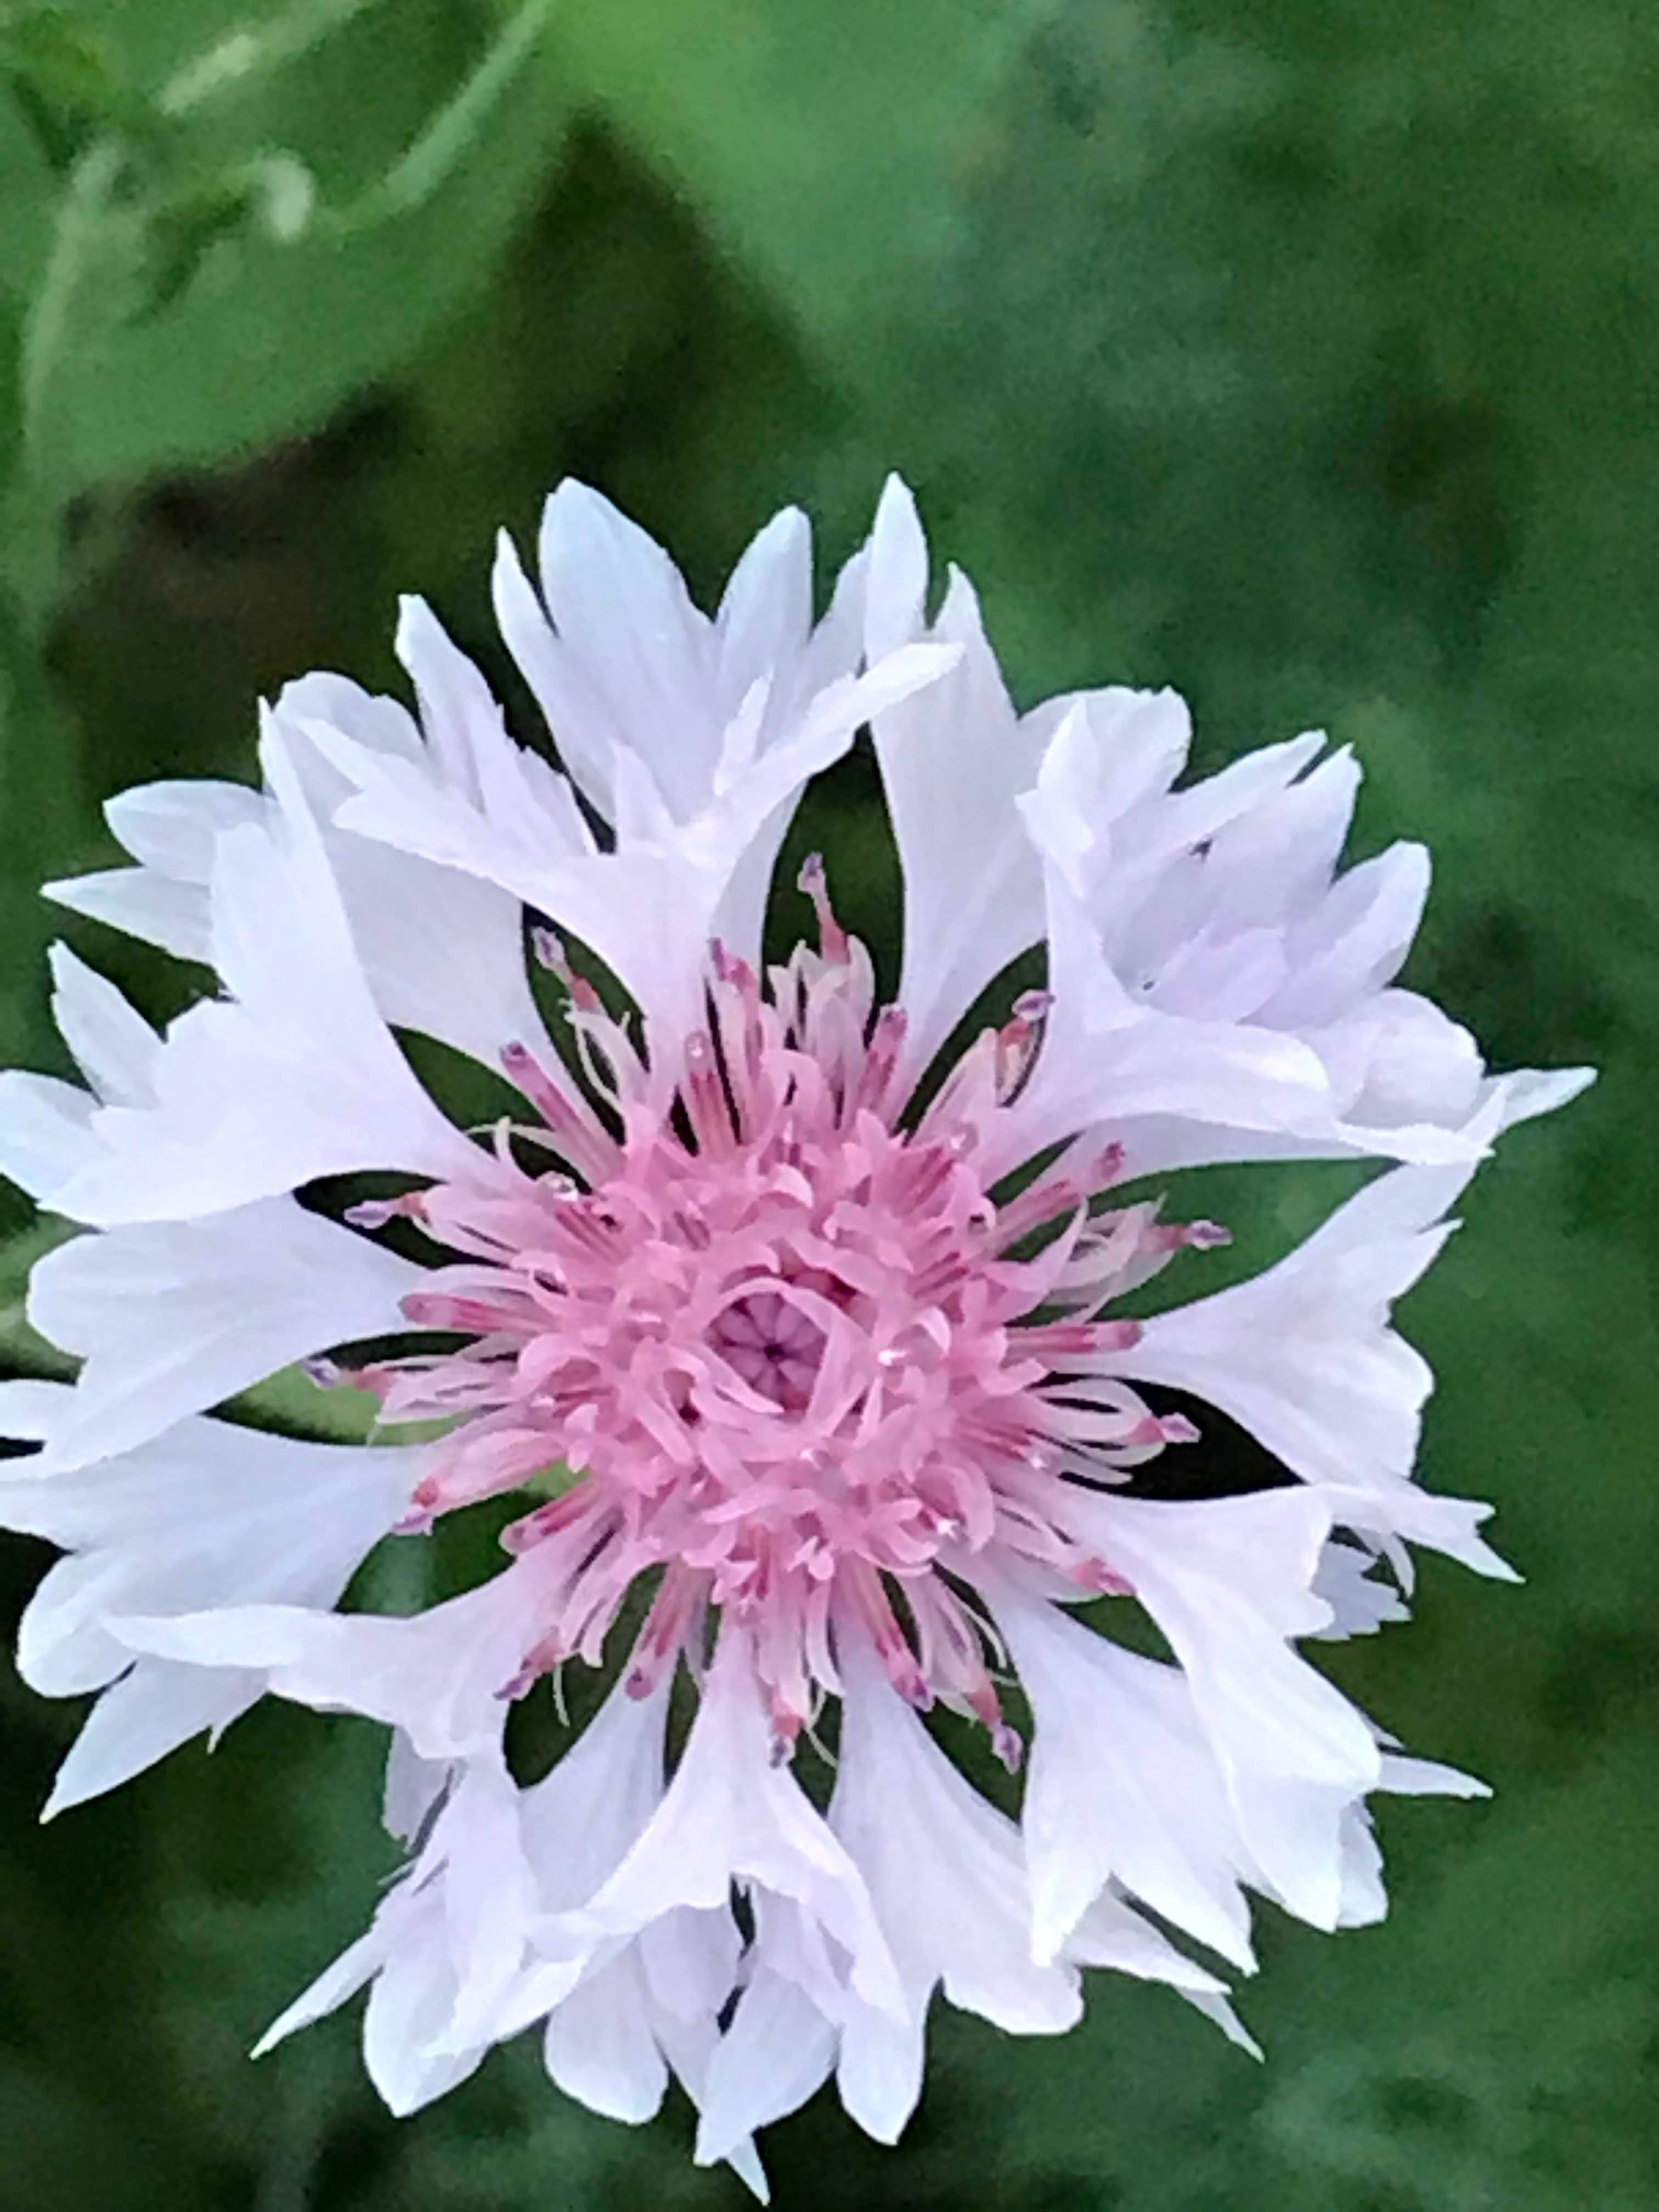 Pink And White Bachelor Button Mass 2019 Rare Flowers Flowers Nature Amazing Flowers